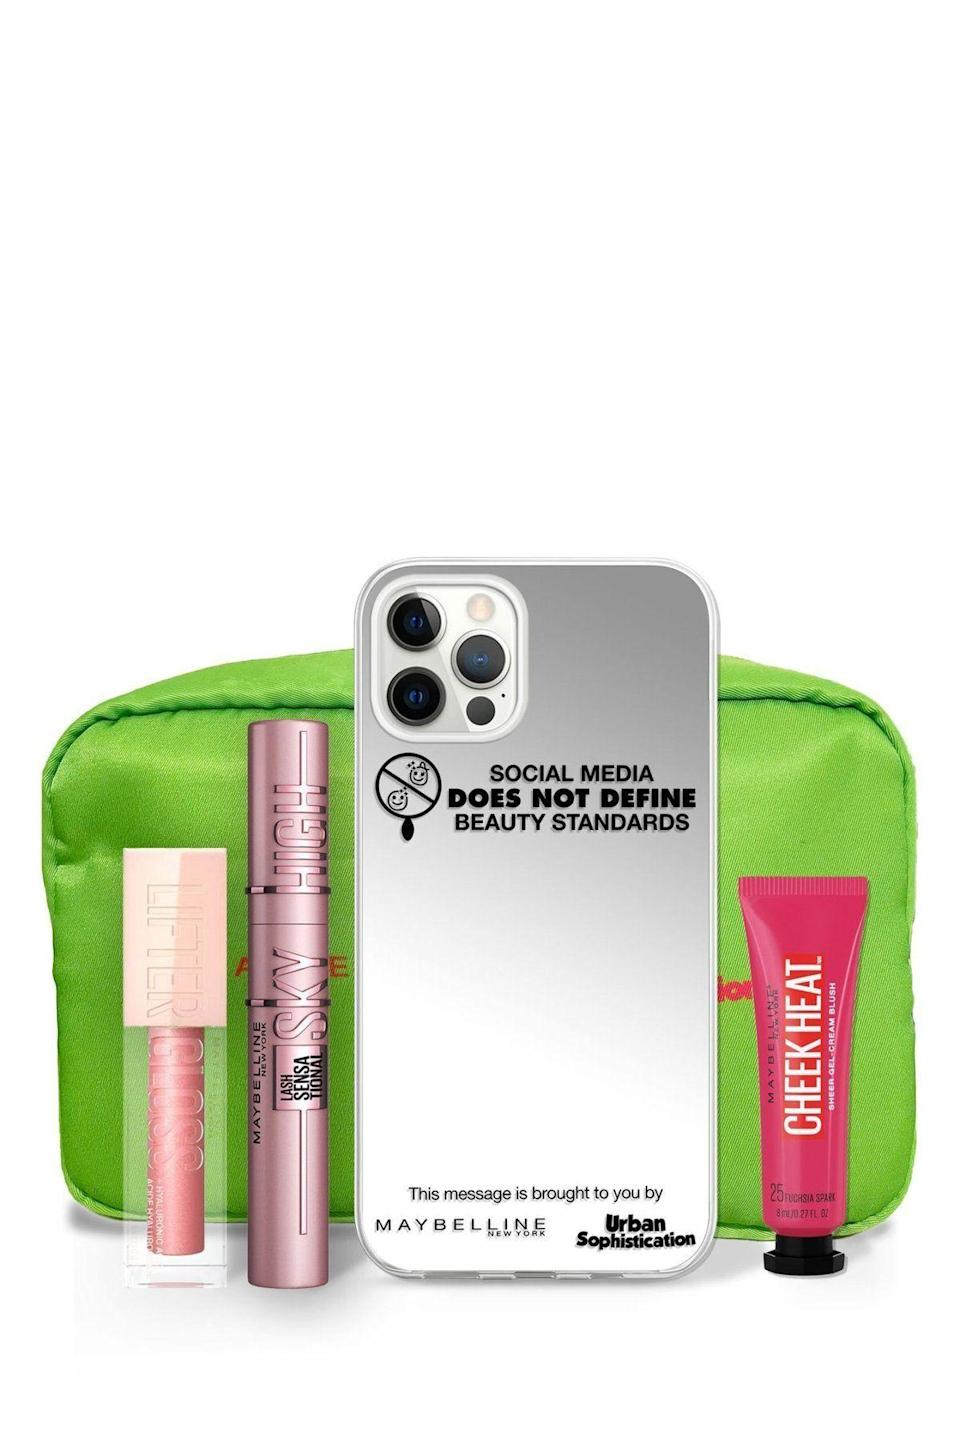 """<p><strong>Maybelline x Urban Sophistication</strong></p><p>urbansophistication.boutique</p><p><strong>$45.00</strong></p><p><a href=""""https://go.redirectingat.com?id=74968X1596630&url=https%3A%2F%2Furbansophistication.boutique%2Fproducts%2Fus-x-maybelline-iphone-case&sref=https%3A%2F%2Fwww.oprahdaily.com%2Flife%2Fg36465535%2Fmental-health-awareness-gifts-that-give-back%2F"""" rel=""""nofollow noopener"""" target=""""_blank"""" data-ylk=""""slk:SHOP NOW"""" class=""""link rapid-noclick-resp"""">SHOP NOW</a></p><p>When we're surrounded by social media all day, it's easy feel """"less than."""" Maybelline partnered with accessories brand Urban Sophistication for this mirrored phone case and makeup kit to remind the wearer that beauty is unique and subjective. All proceeds of this set go to <a href=""""https://www.jedfoundation.org/"""" rel=""""nofollow noopener"""" target=""""_blank"""" data-ylk=""""slk:The Jed Foundation"""" class=""""link rapid-noclick-resp"""">The Jed Foundation</a>. </p>"""